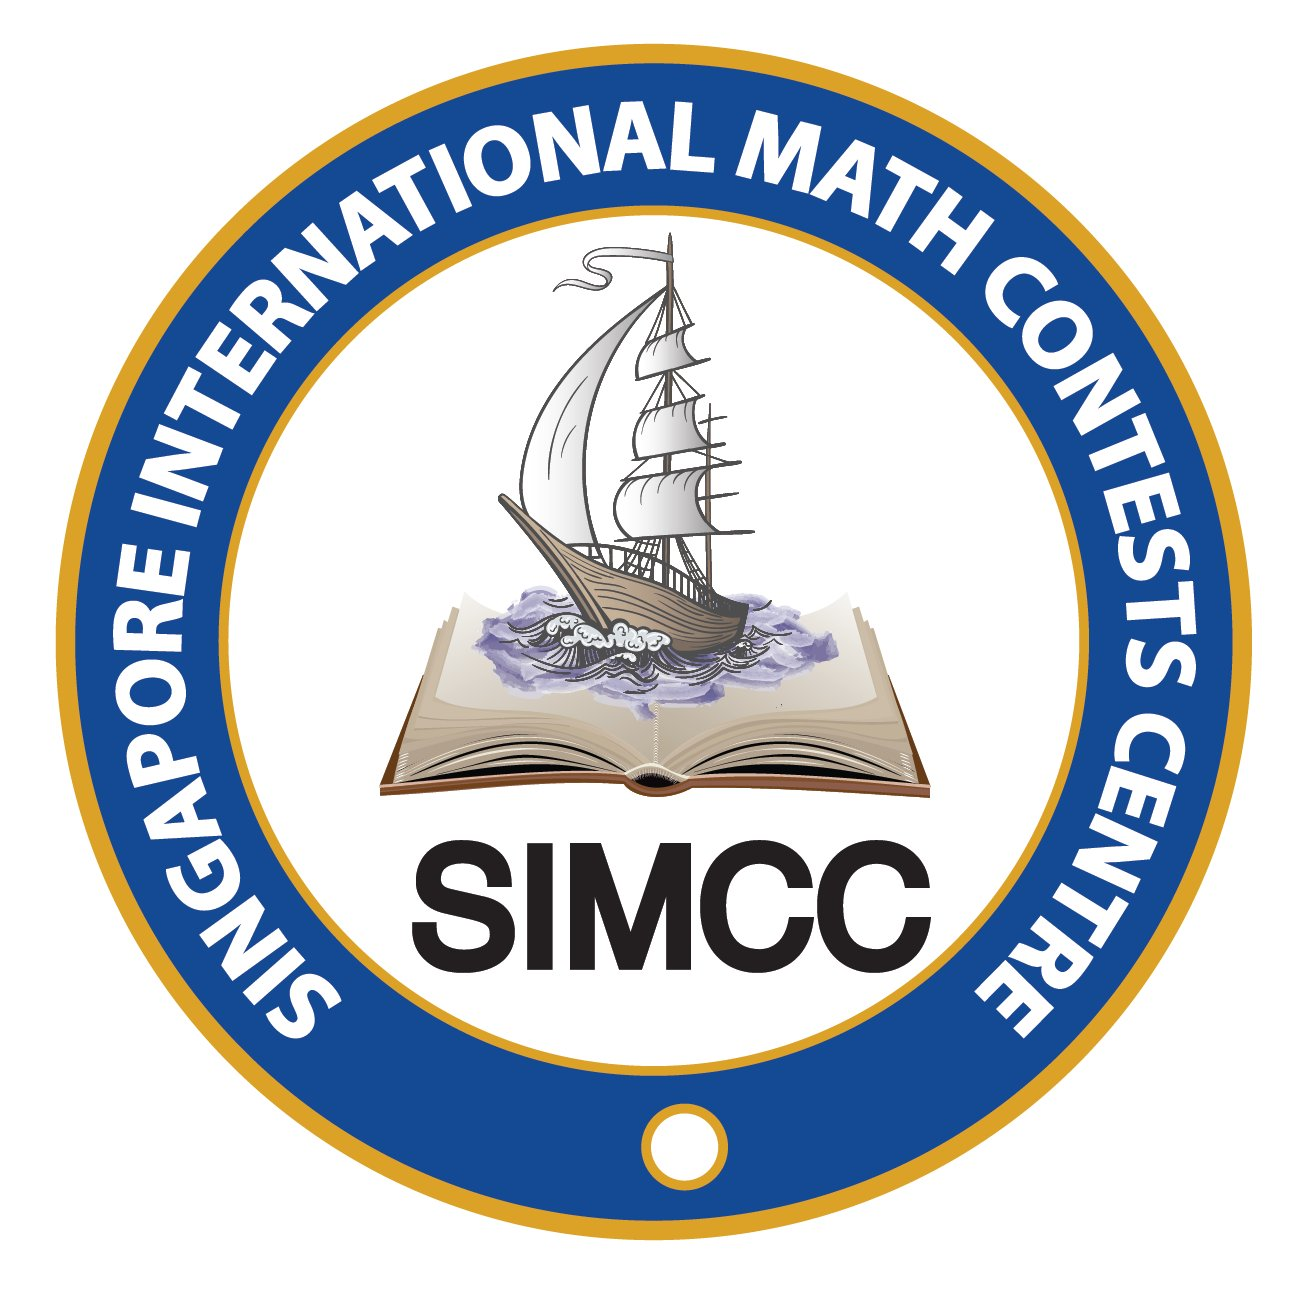 THAILAND INTERNATIONAL MATHEMATICAL OLYMPIAD